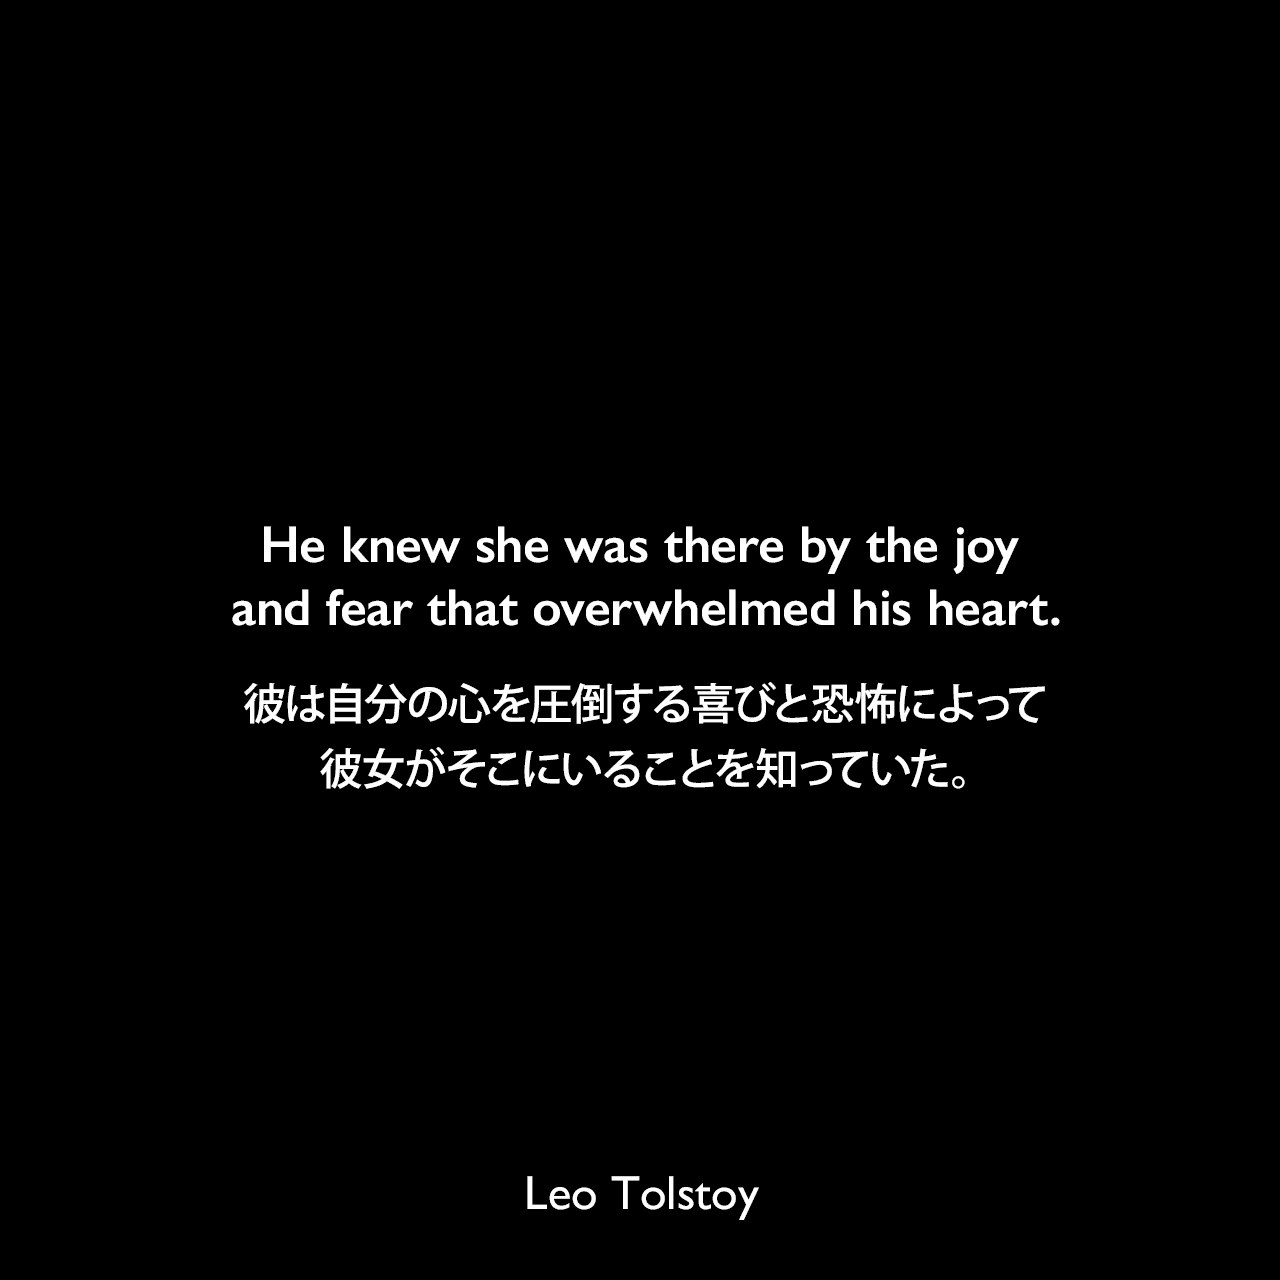 He knew she was there by the joy and fear that overwhelmed his heart.彼は自分の心を圧倒する喜びと恐怖によって、彼女がそこにいることを知っていた。- トルストイによる小説「アンナ・カレーニナ」よりLeo Tolstoy